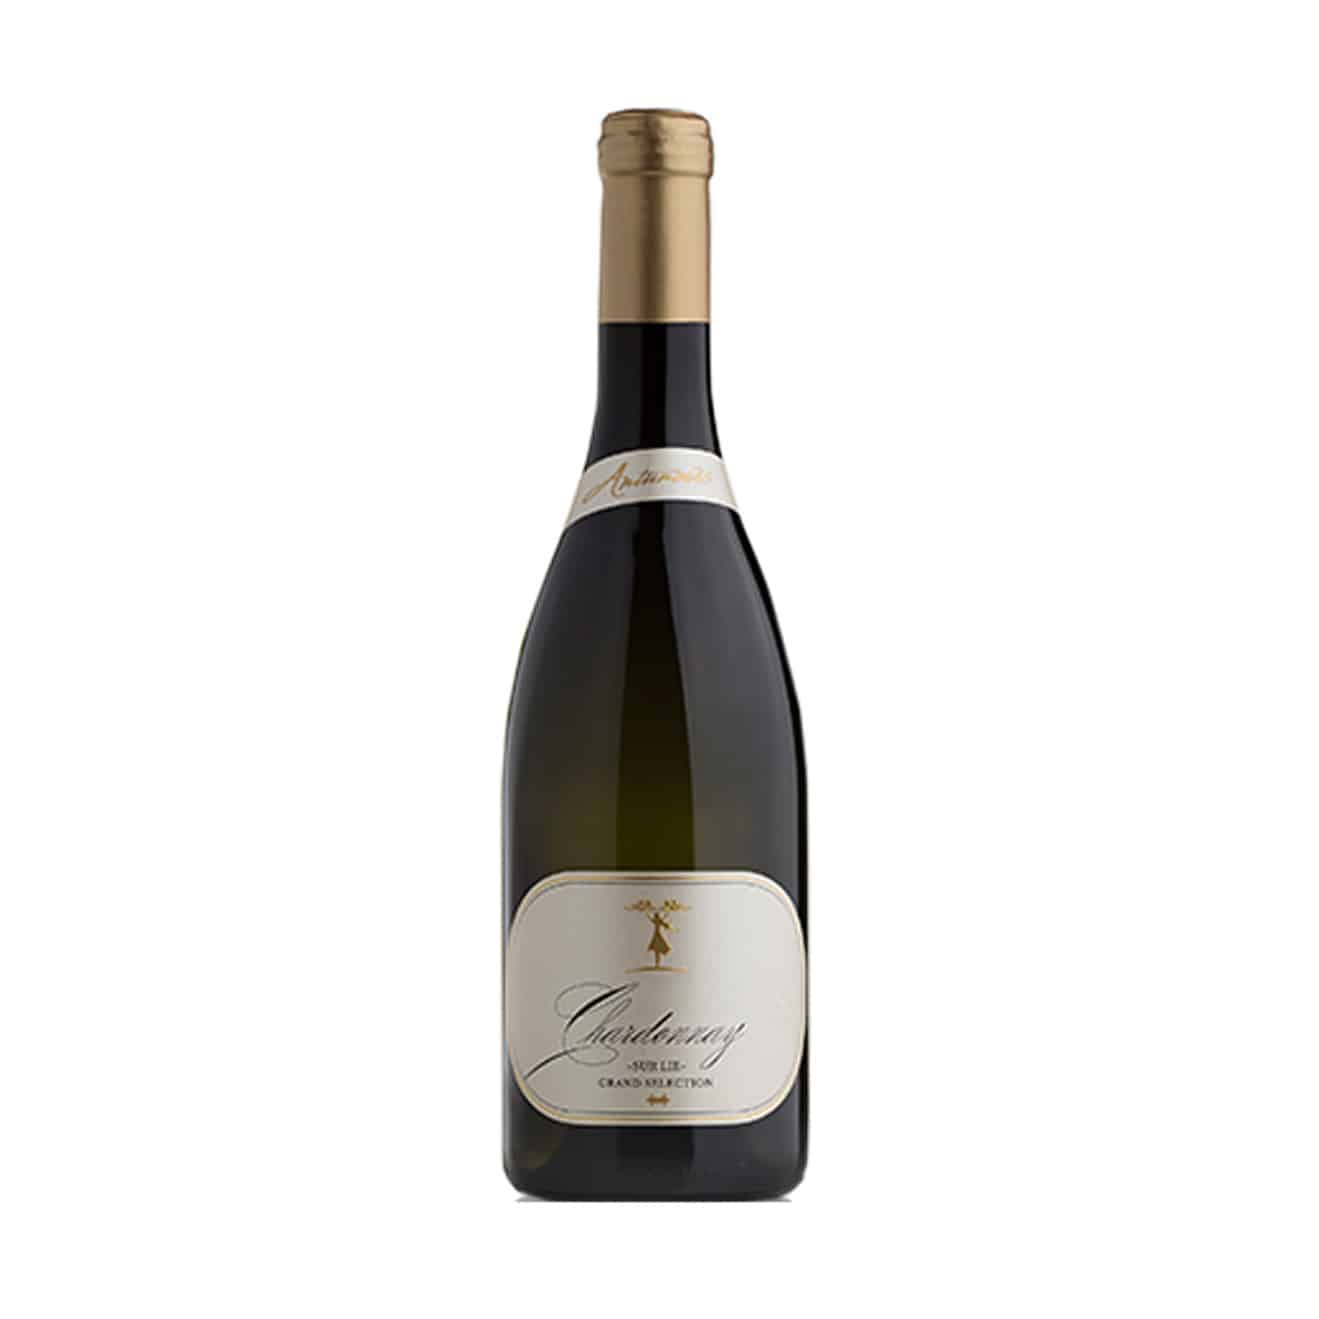 Antunović Chardonnay Sur Lie Grand Selection 2017